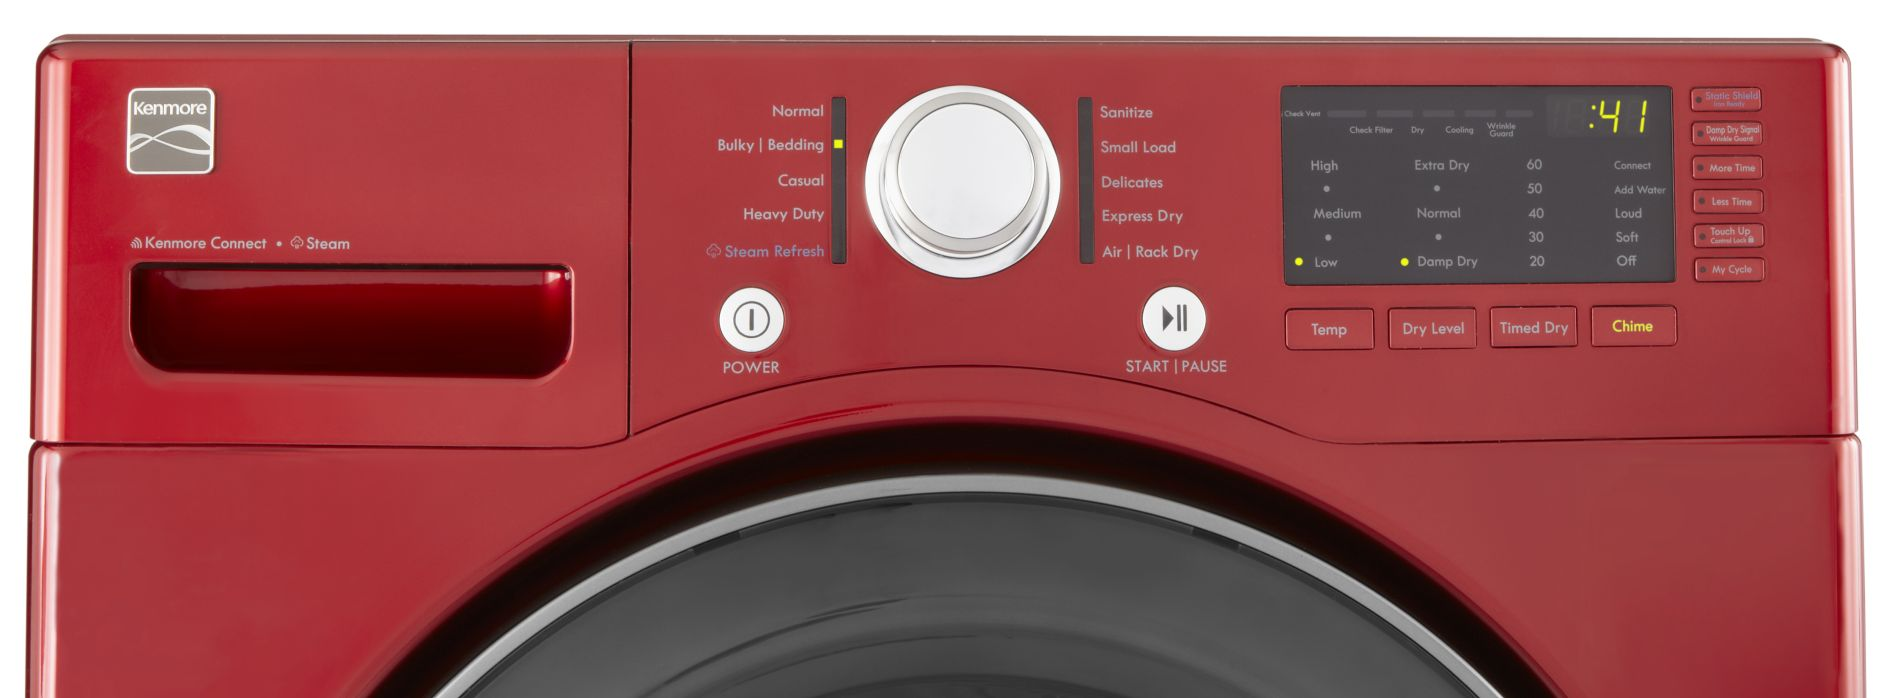 Kenmore 7.3 cu. ft. Gas Dryer with Sensor Dry - Red